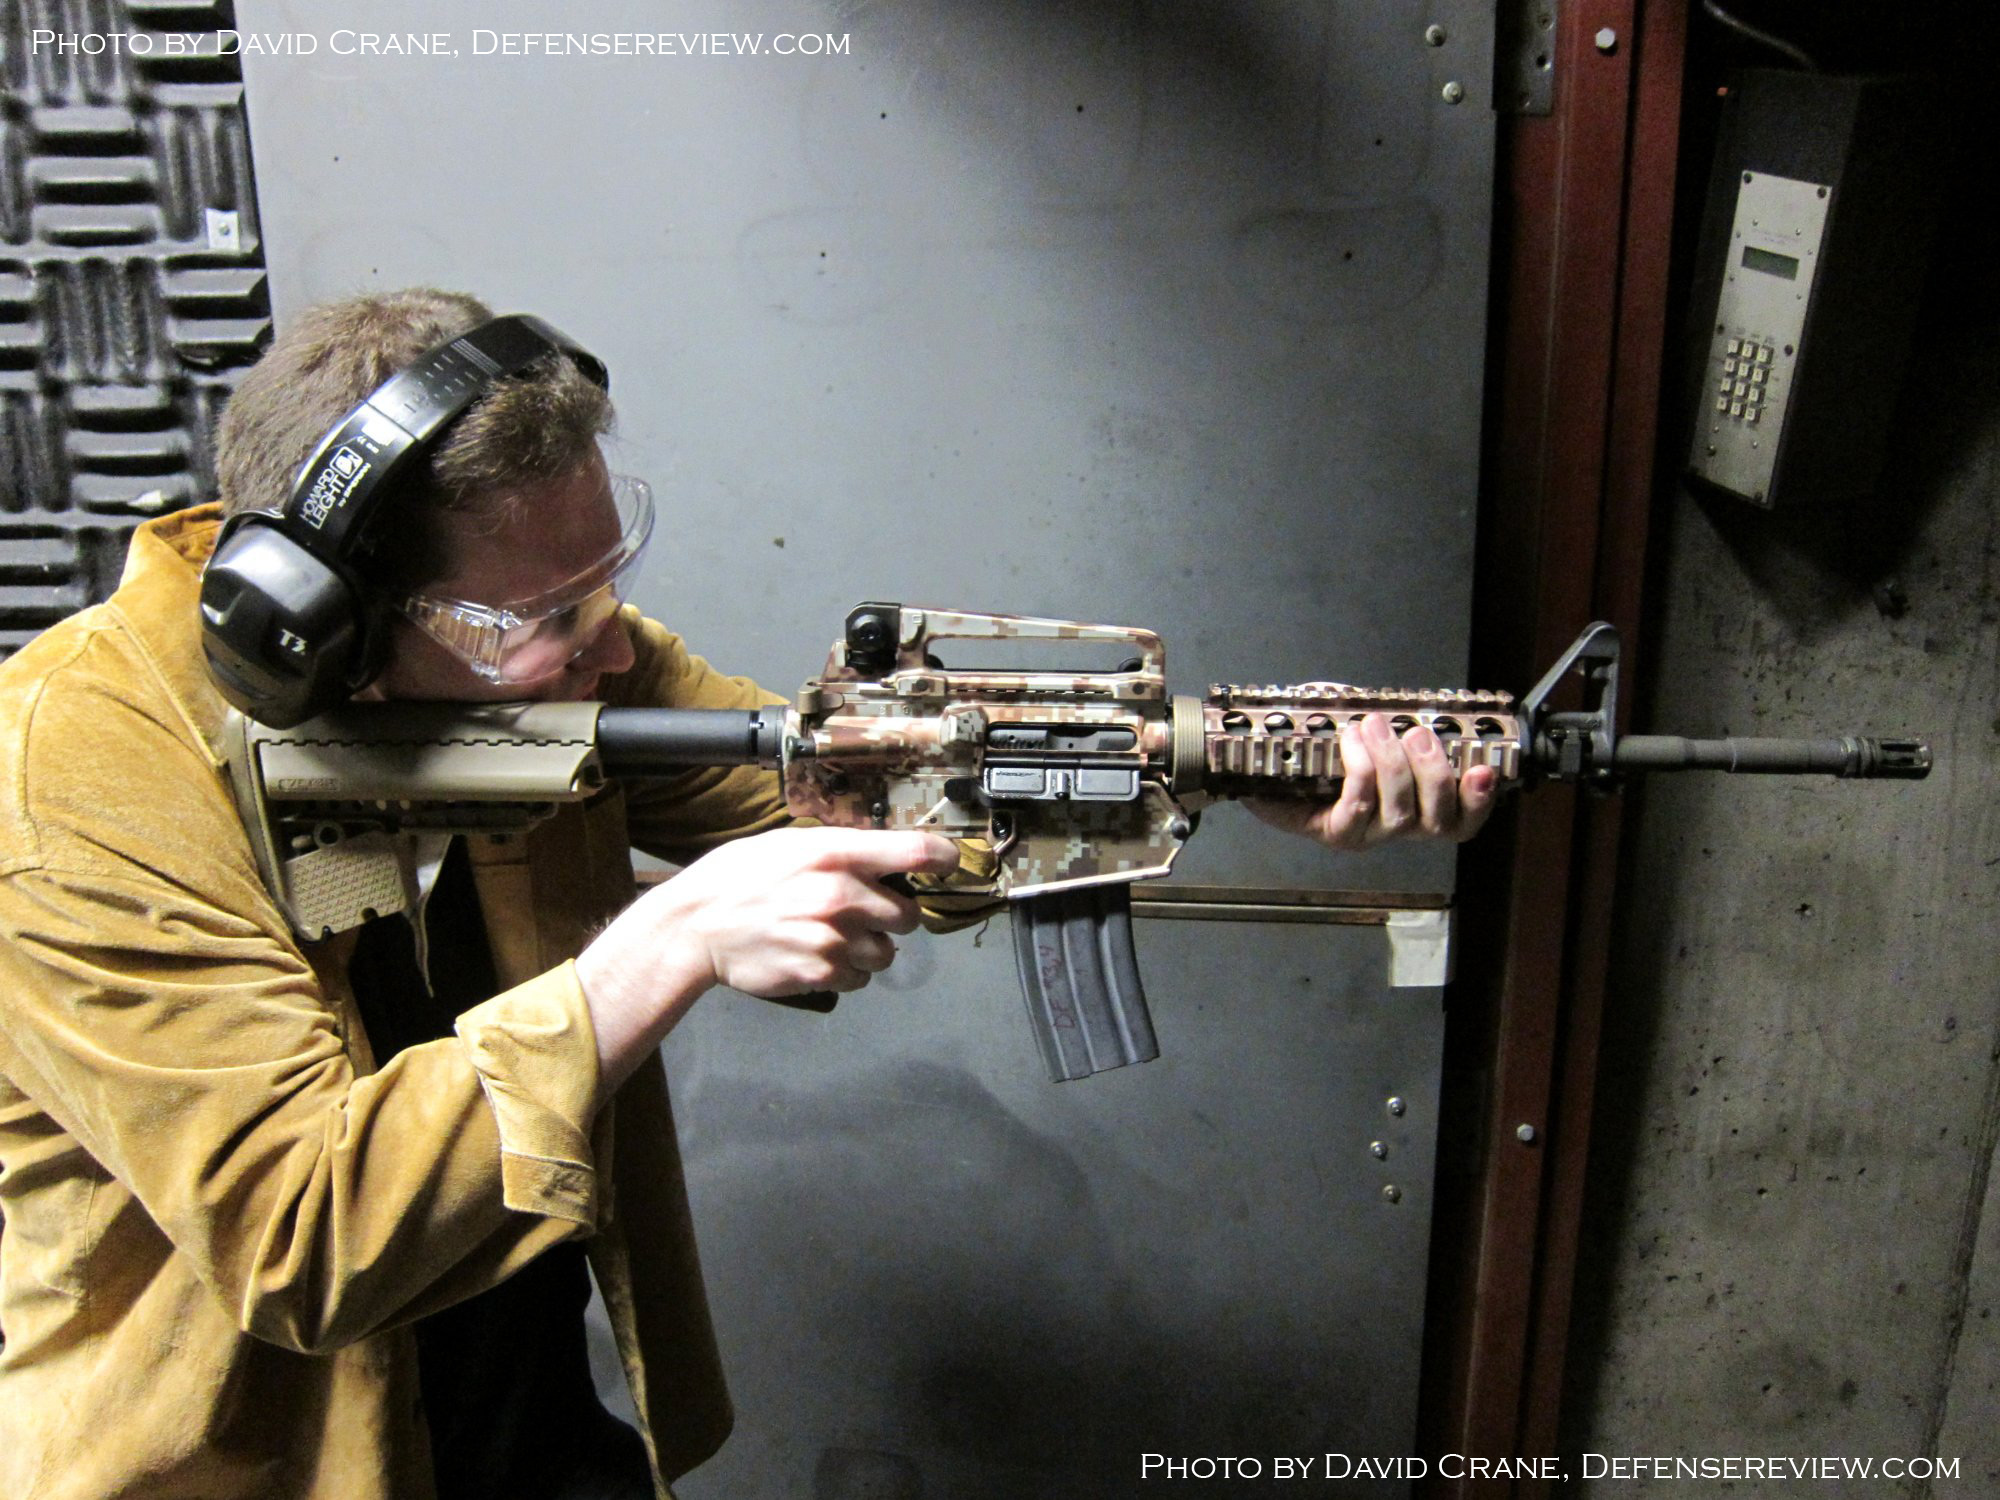 Colt CM901 AR Carbine SBR 5.56mm David Crane DefenseReview.com 7 W <!  :en  >DR Exclusive First Look!: SCAR Who? Meet the Colt Modular Carbine (CMC) Model CM901 Multi Caliber 7.62mm NATO Battle Rifle / 5.56mm NATO Assault Rifle for U.S. Military Special Operations Forces (SOF) and General Infantry Forces (GIF). DefenseReview (DR) Reports (Photos and Video!) <!  :  >